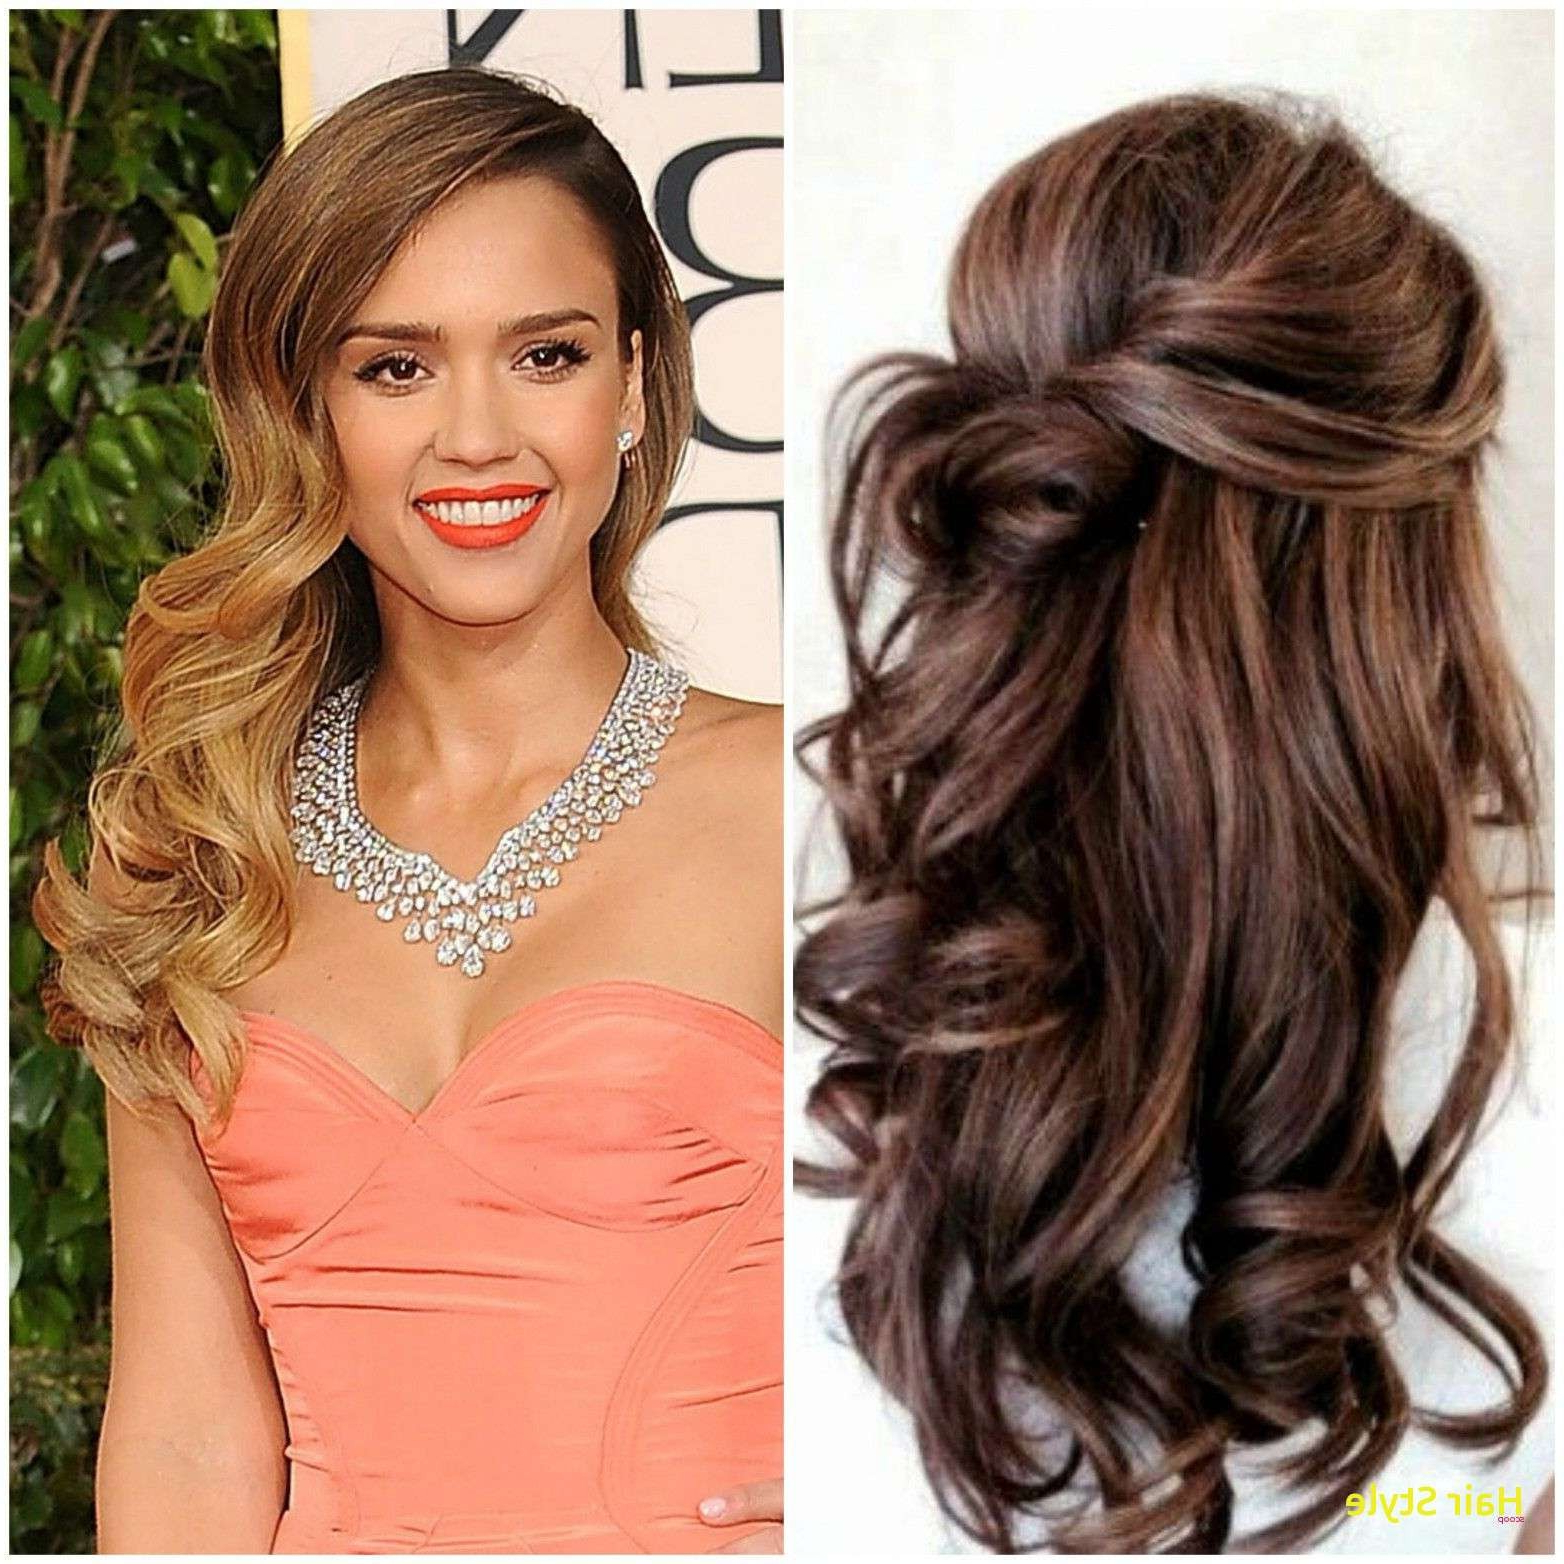 Hair Stylist For Weddings Inspirational Elegant Easy Bridal Throughout Most Popular Bridal Medium Hairstyles (View 8 of 20)